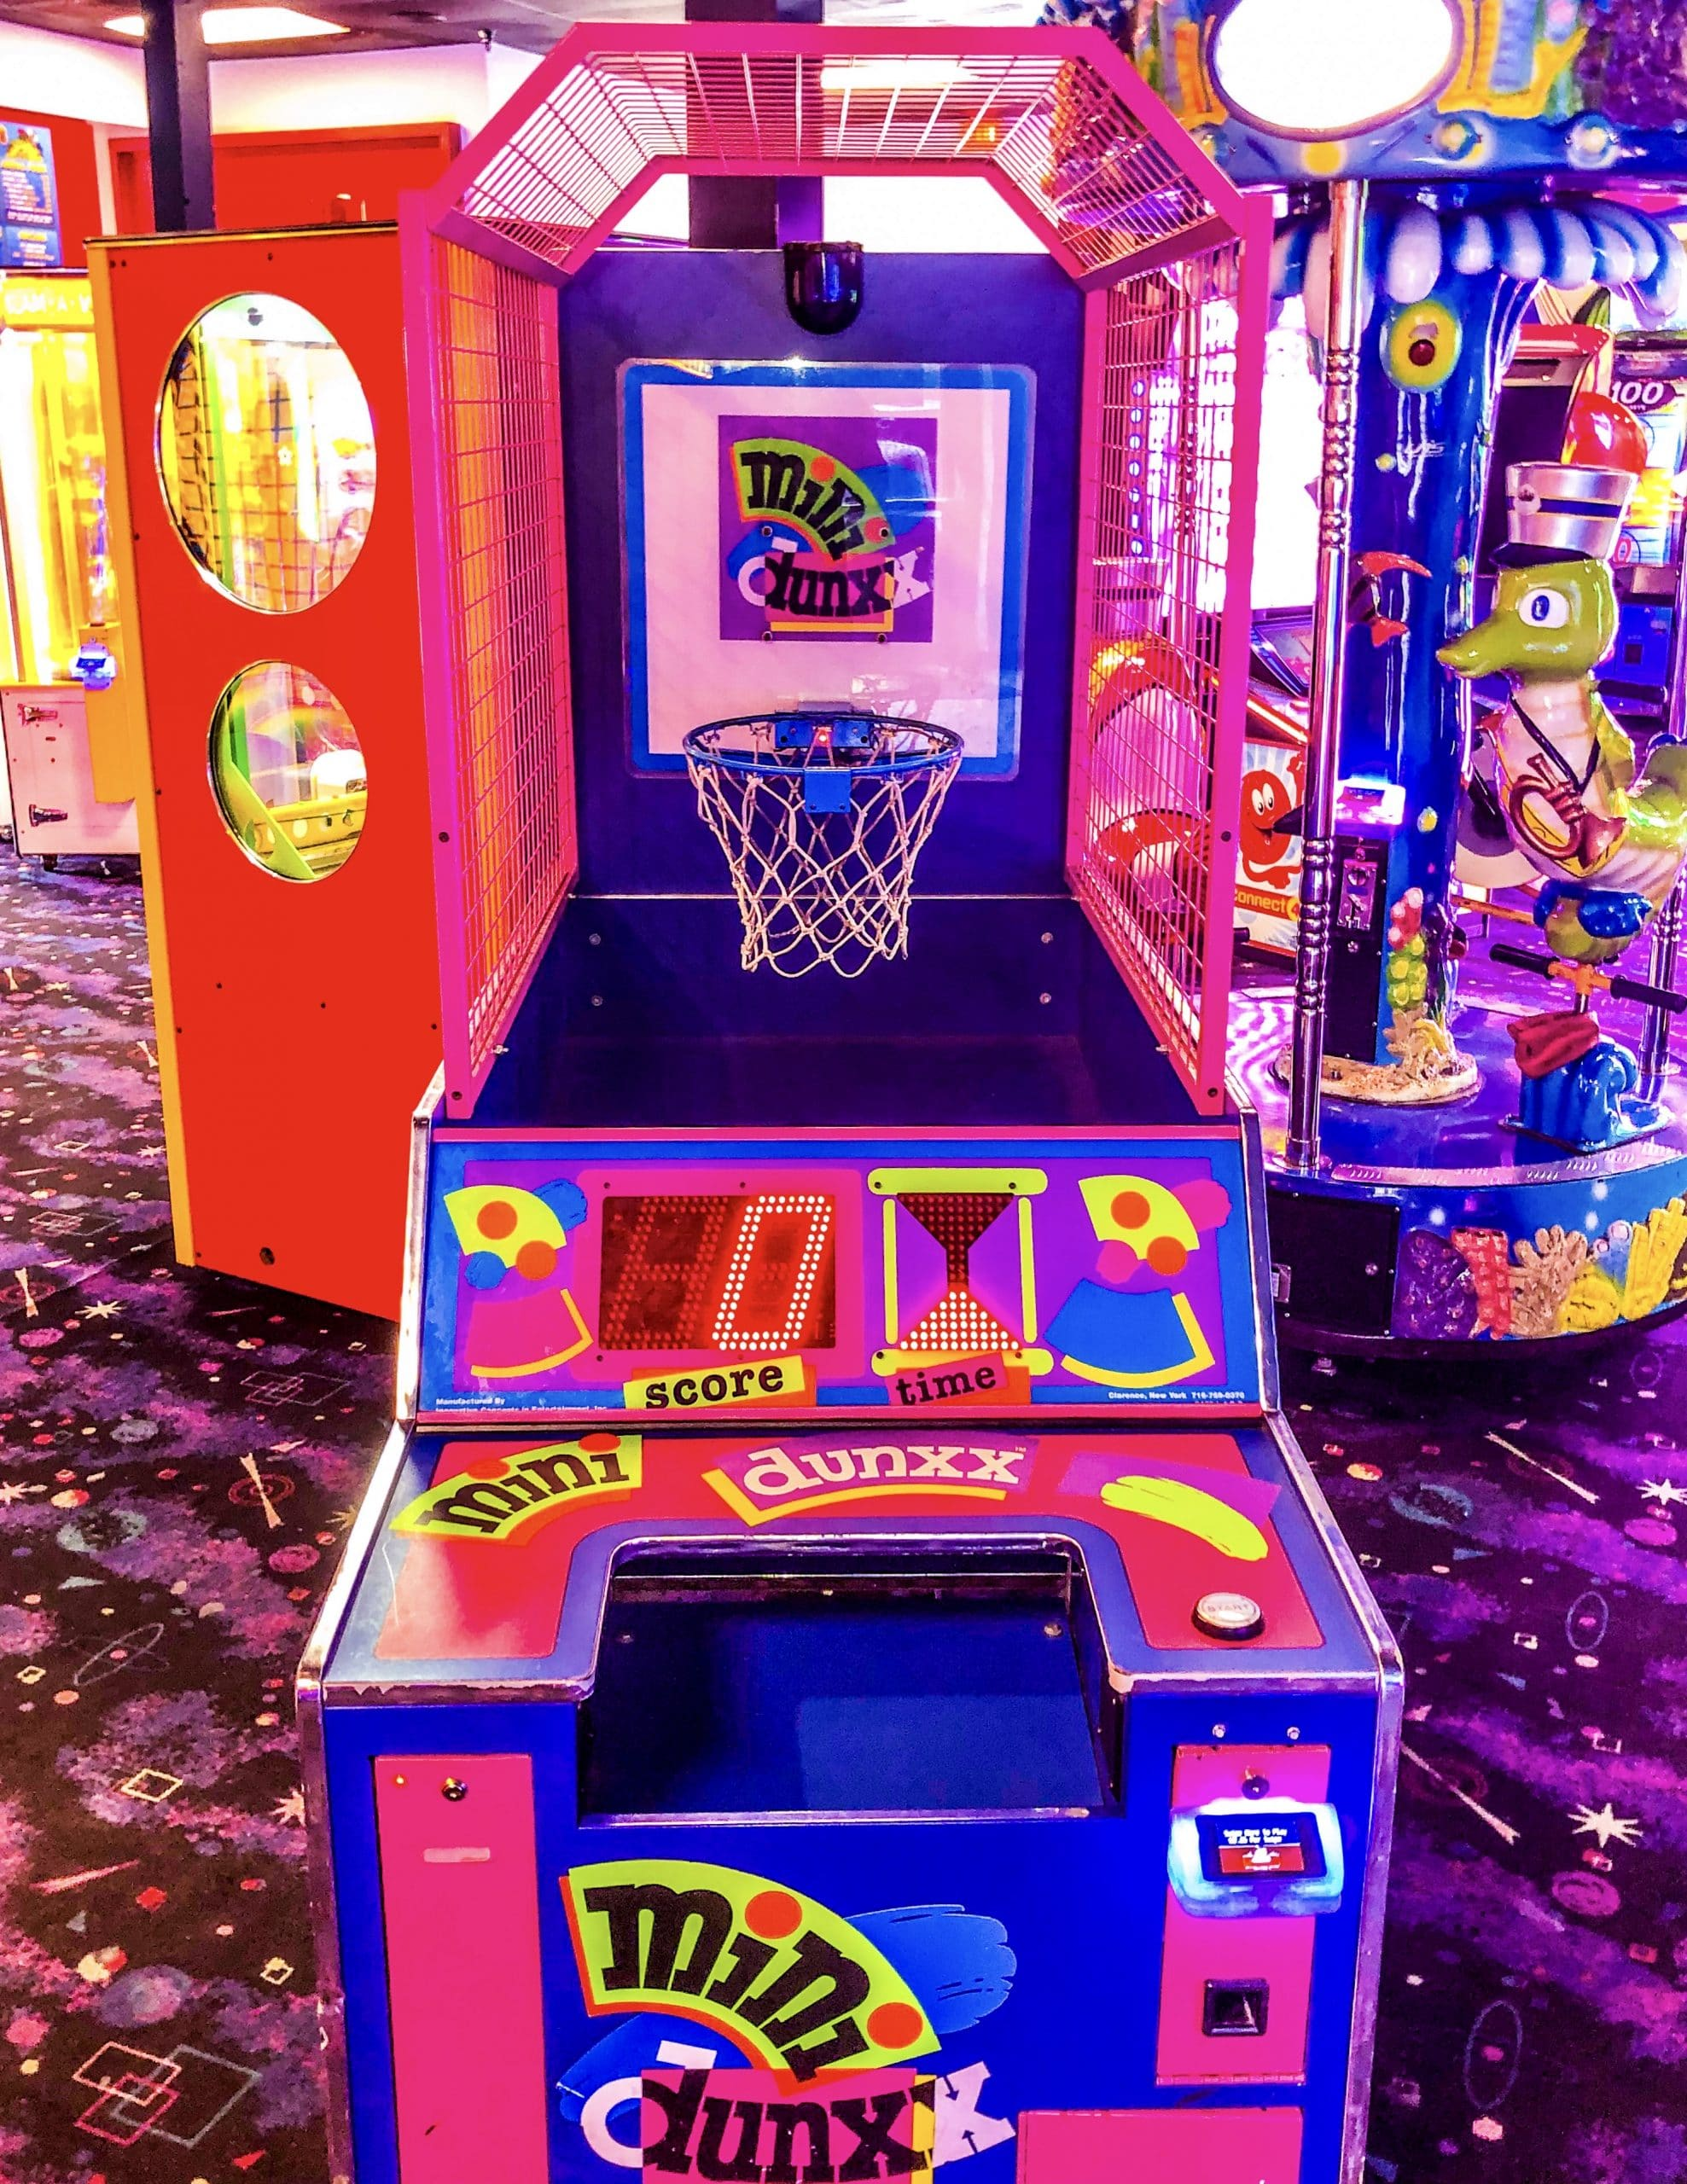 Arcade Game - Mini Dunxx